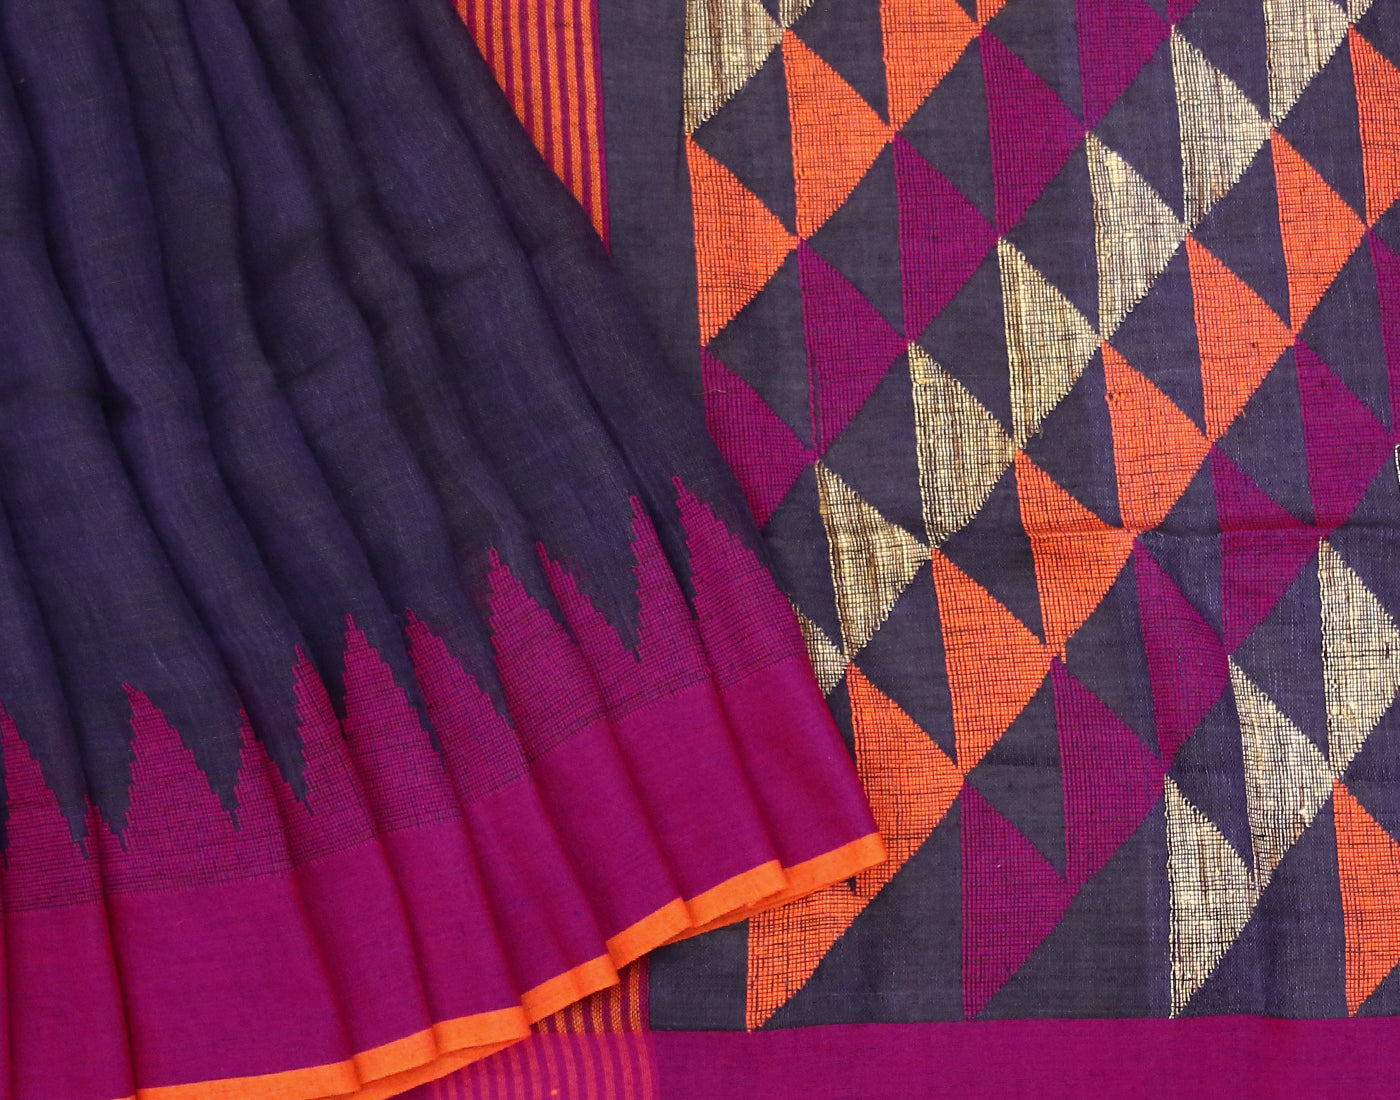 Handloom Blue 'N' Orange Linen Saree With Pompoms